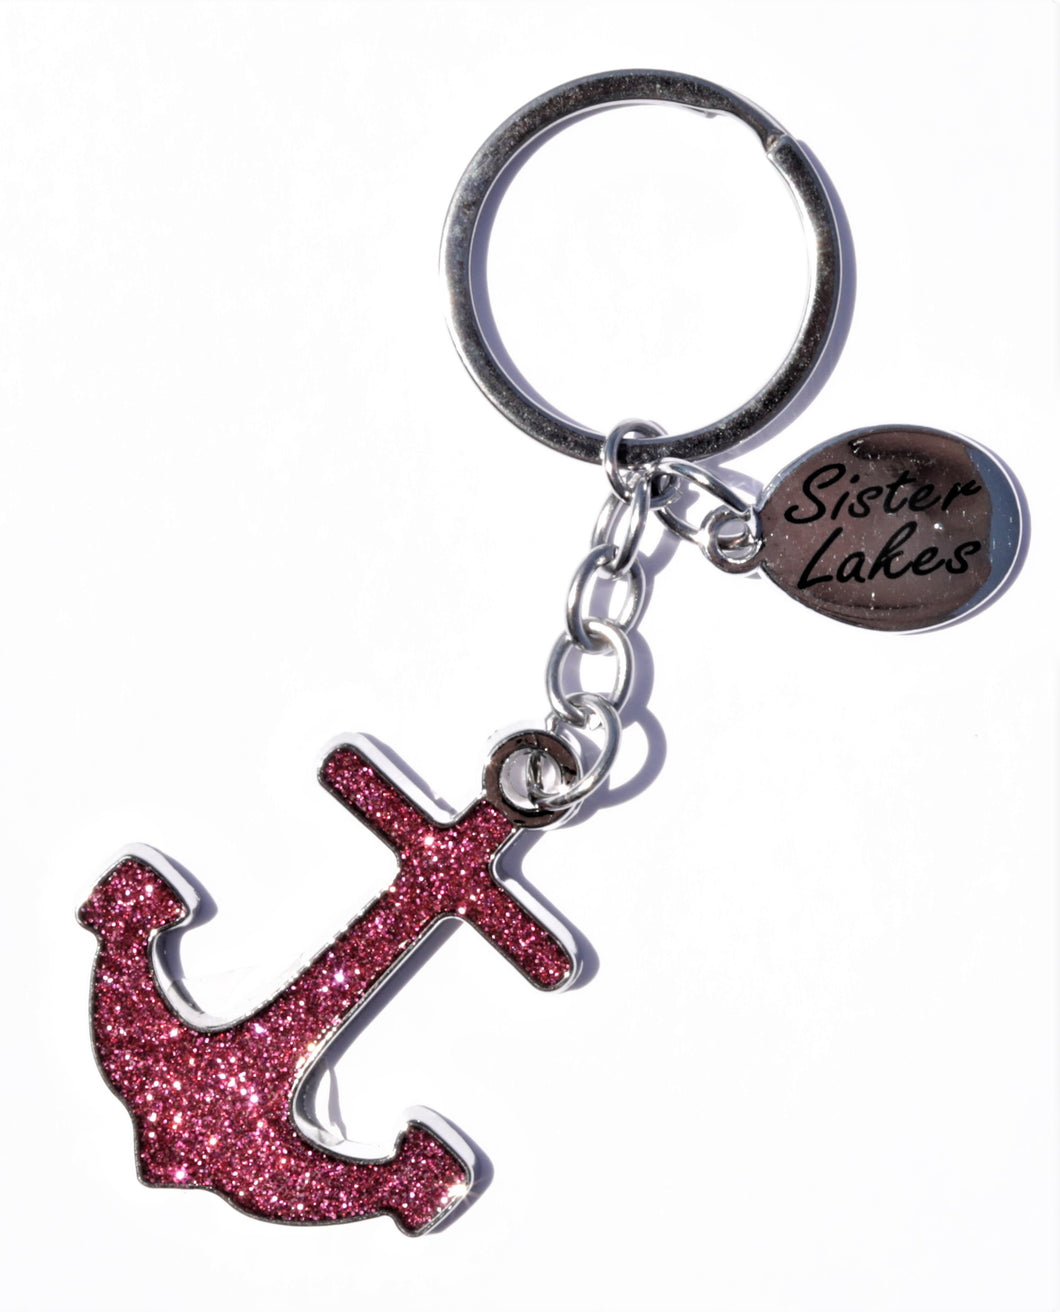 Sister Lakes Keychain